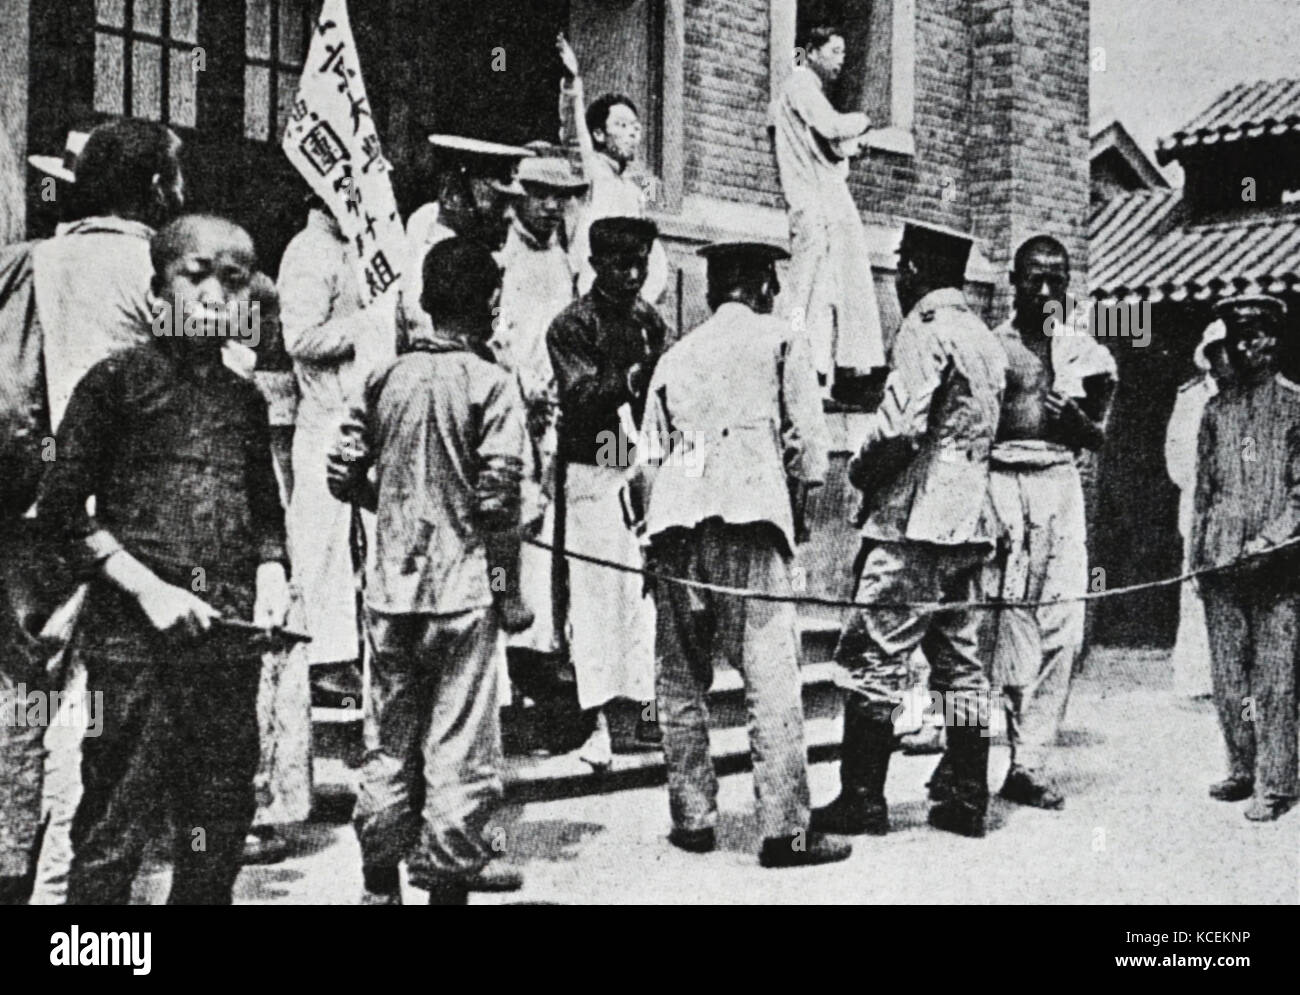 Photograph taken during the 'May Fourth Movement' period. The May Fourth Movement was an anti-imperialist, - Stock Image